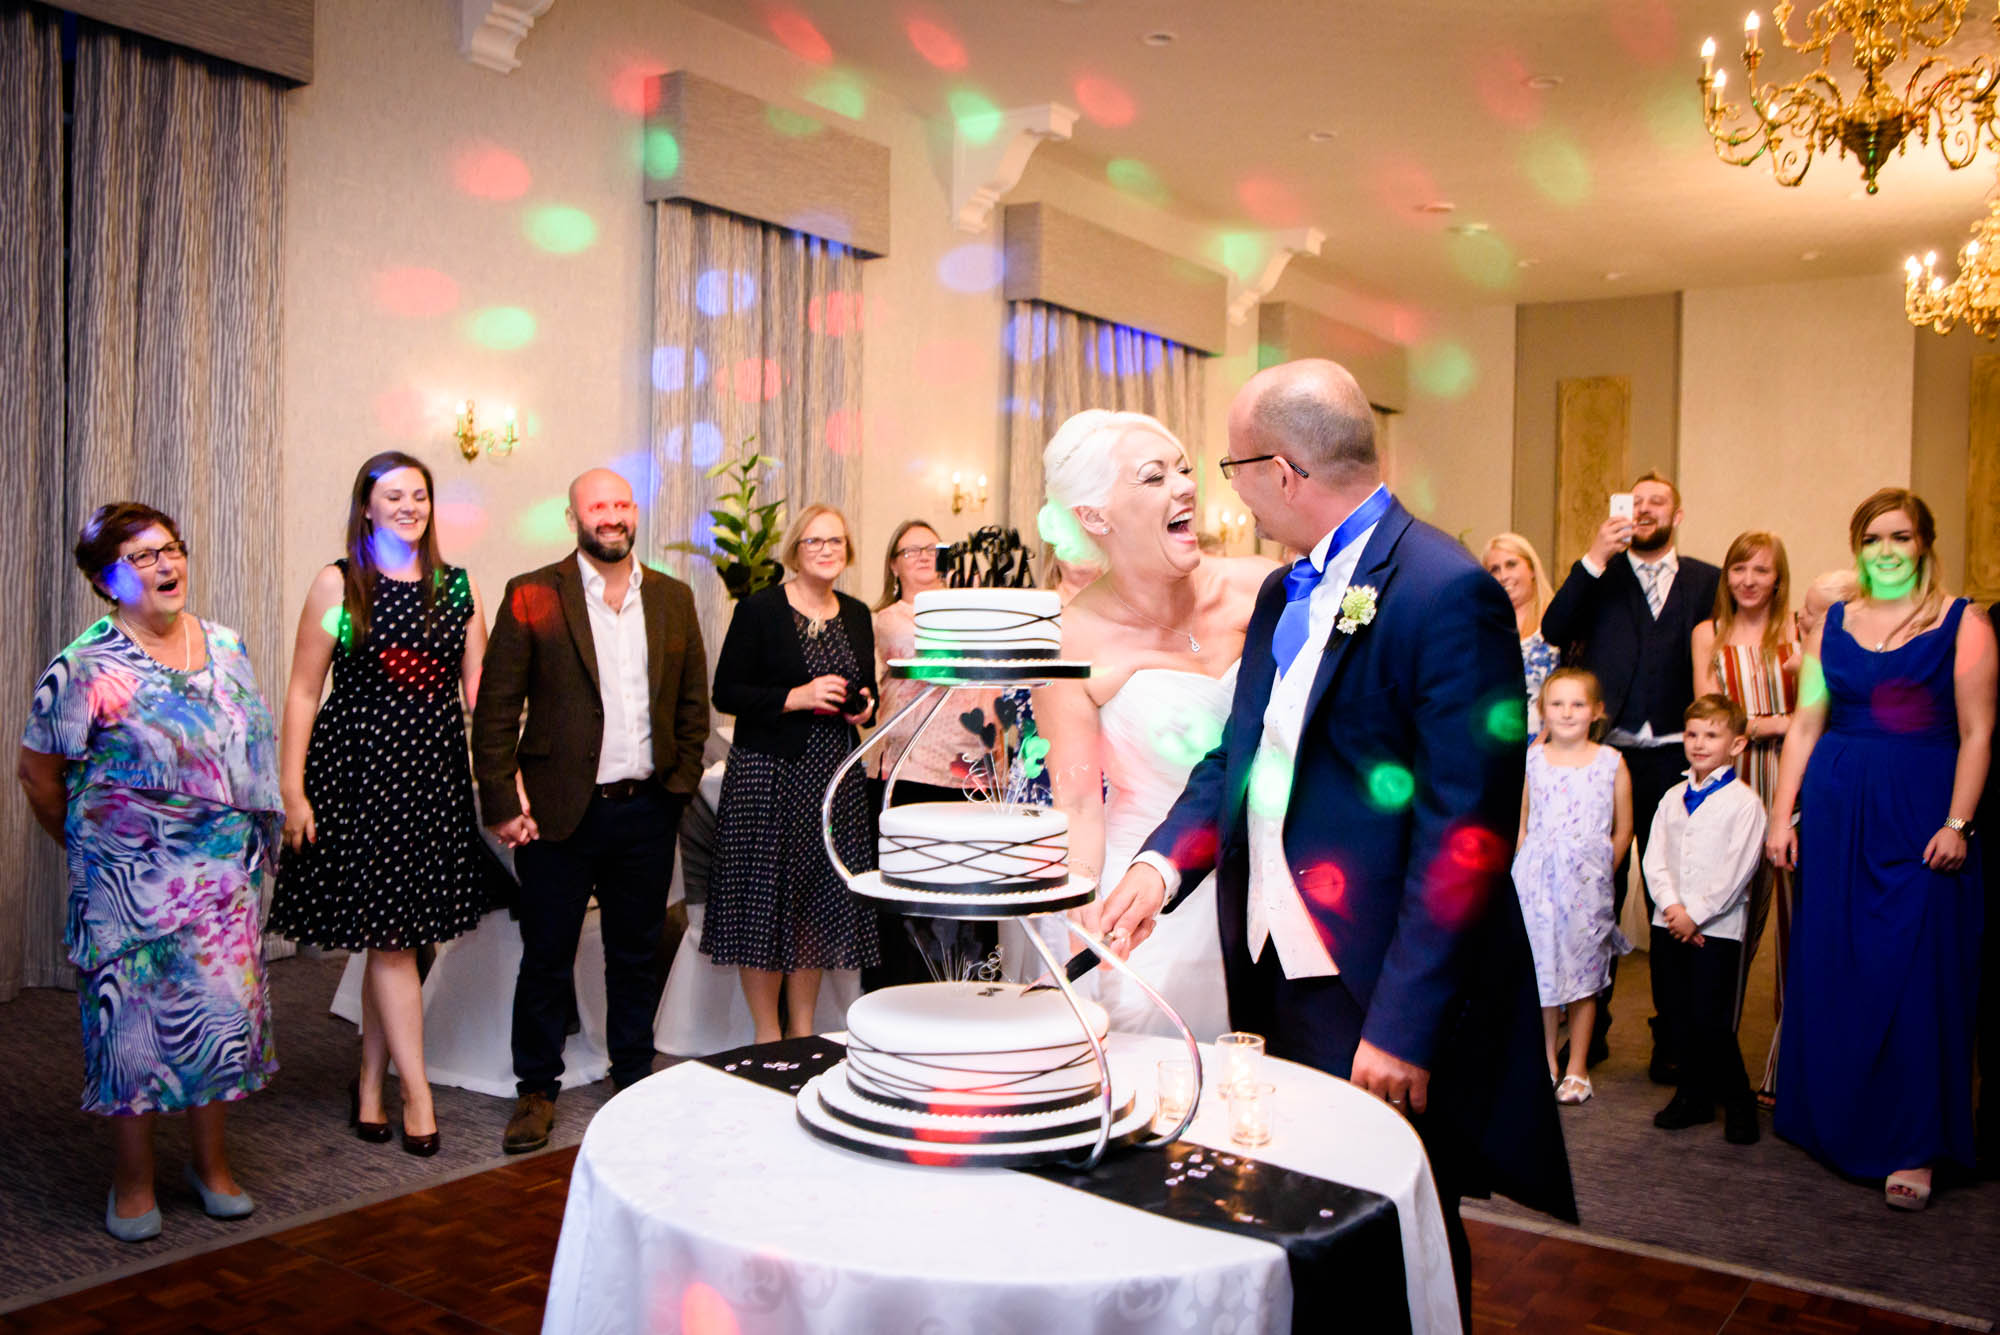 Cutting of the cake at Shrigley Hall